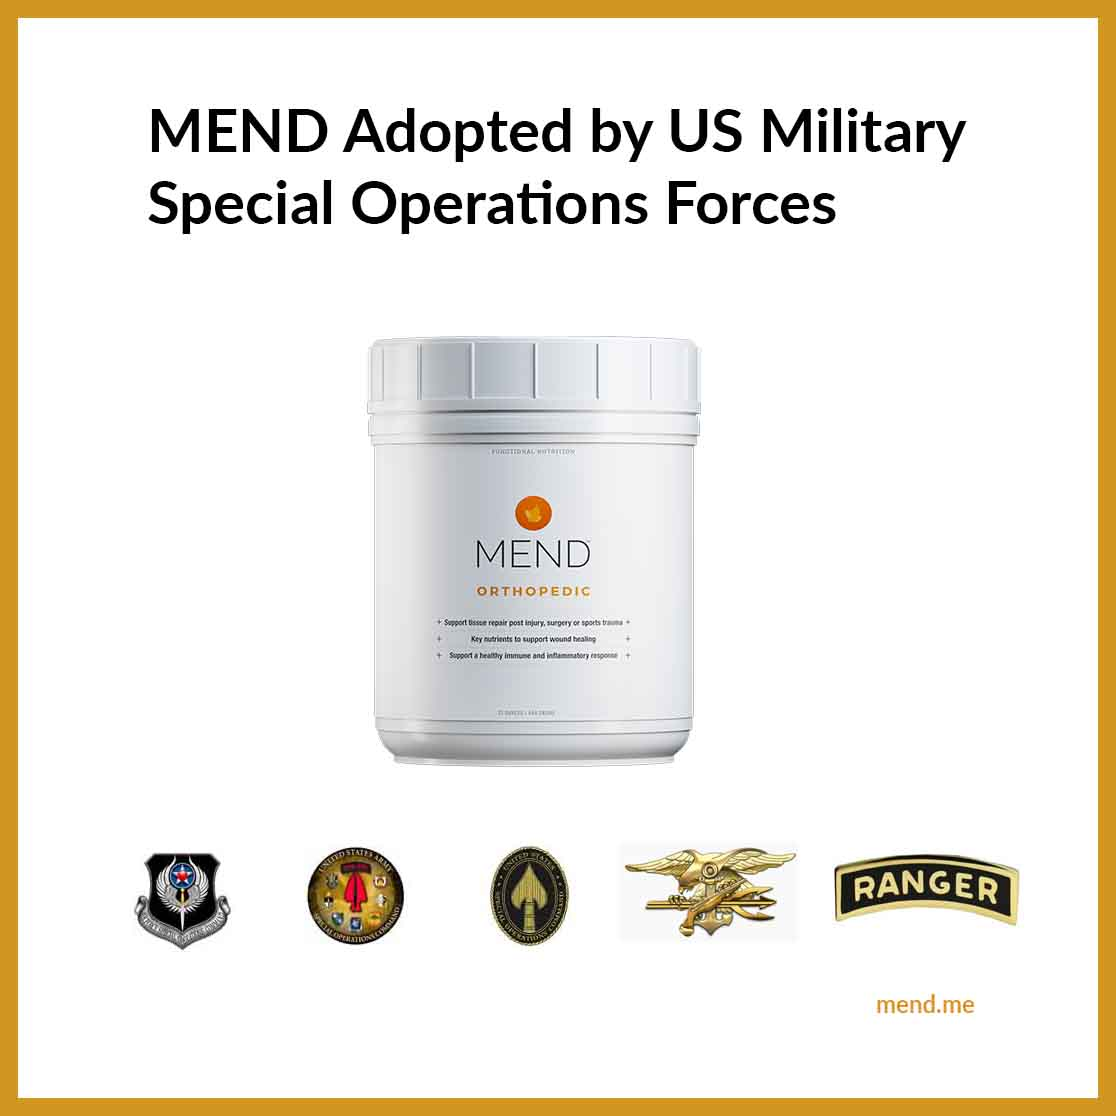 MEND Adopted by US Military Special Operations Forces